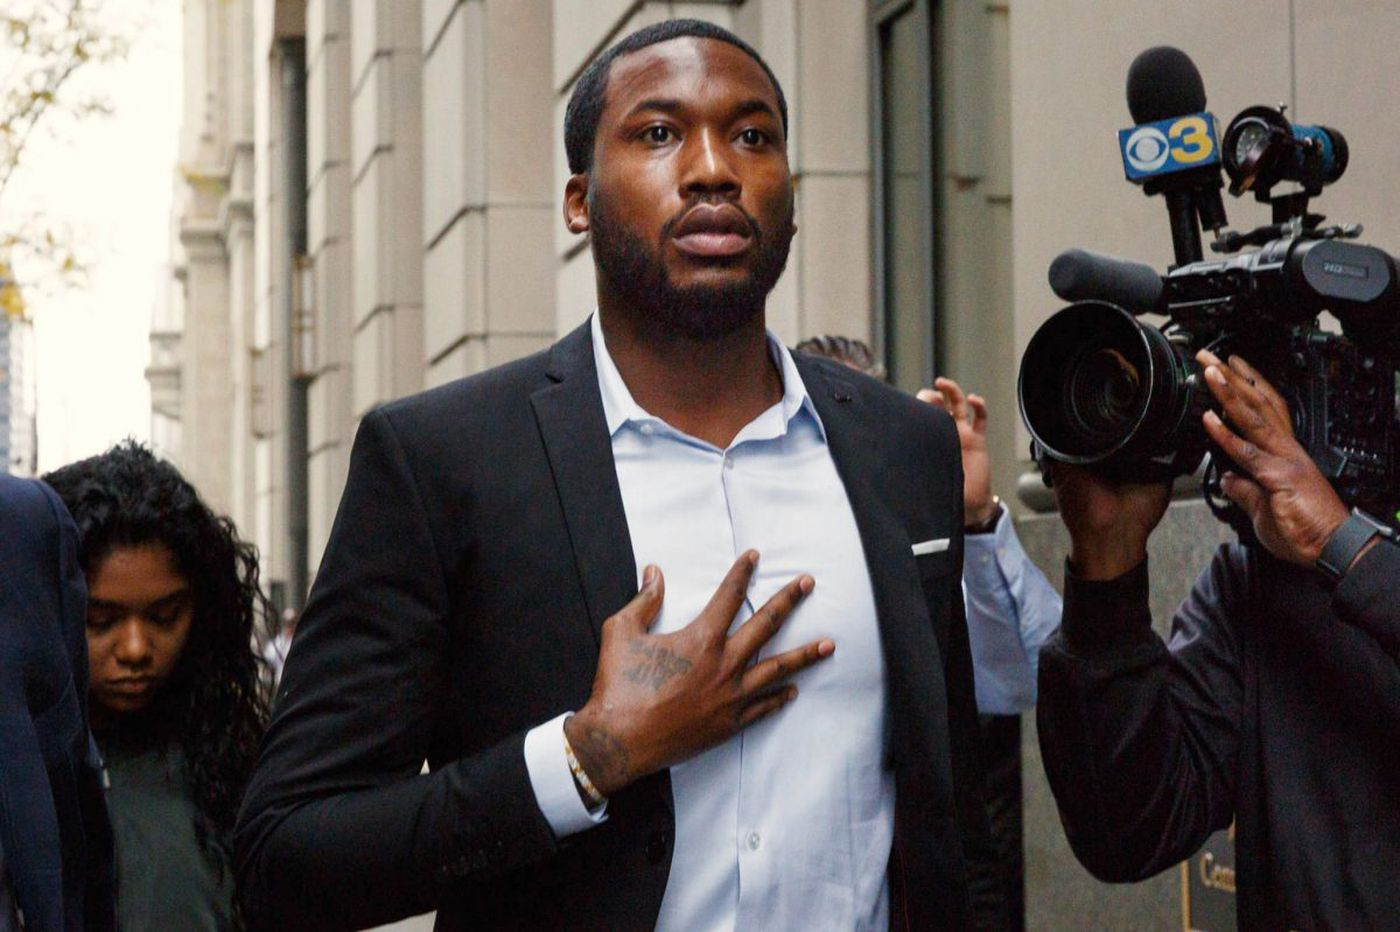 Meek Mill's battle with judge enters another round